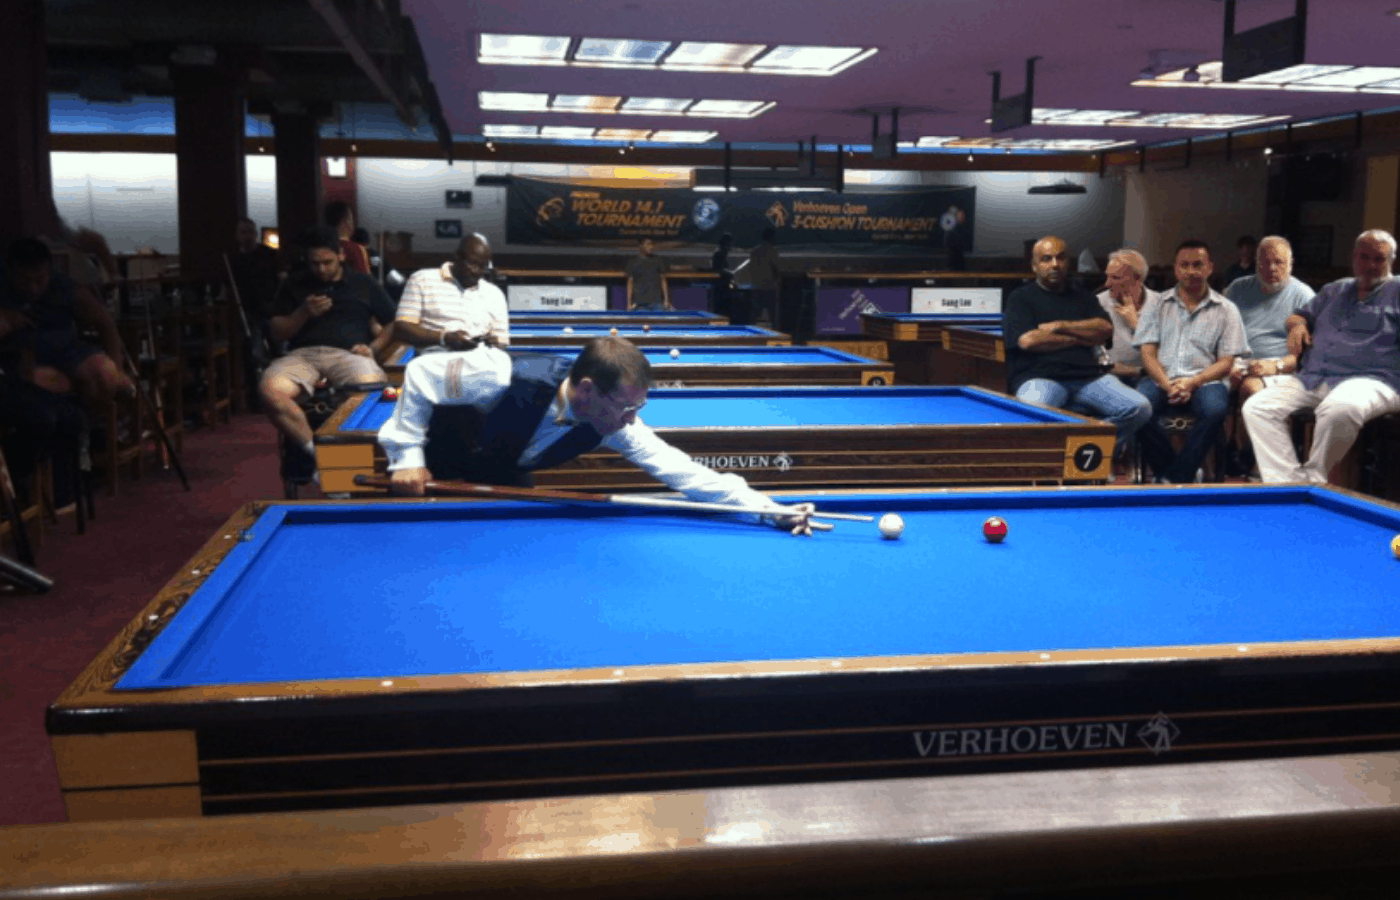 why do some pool tables have no pockets